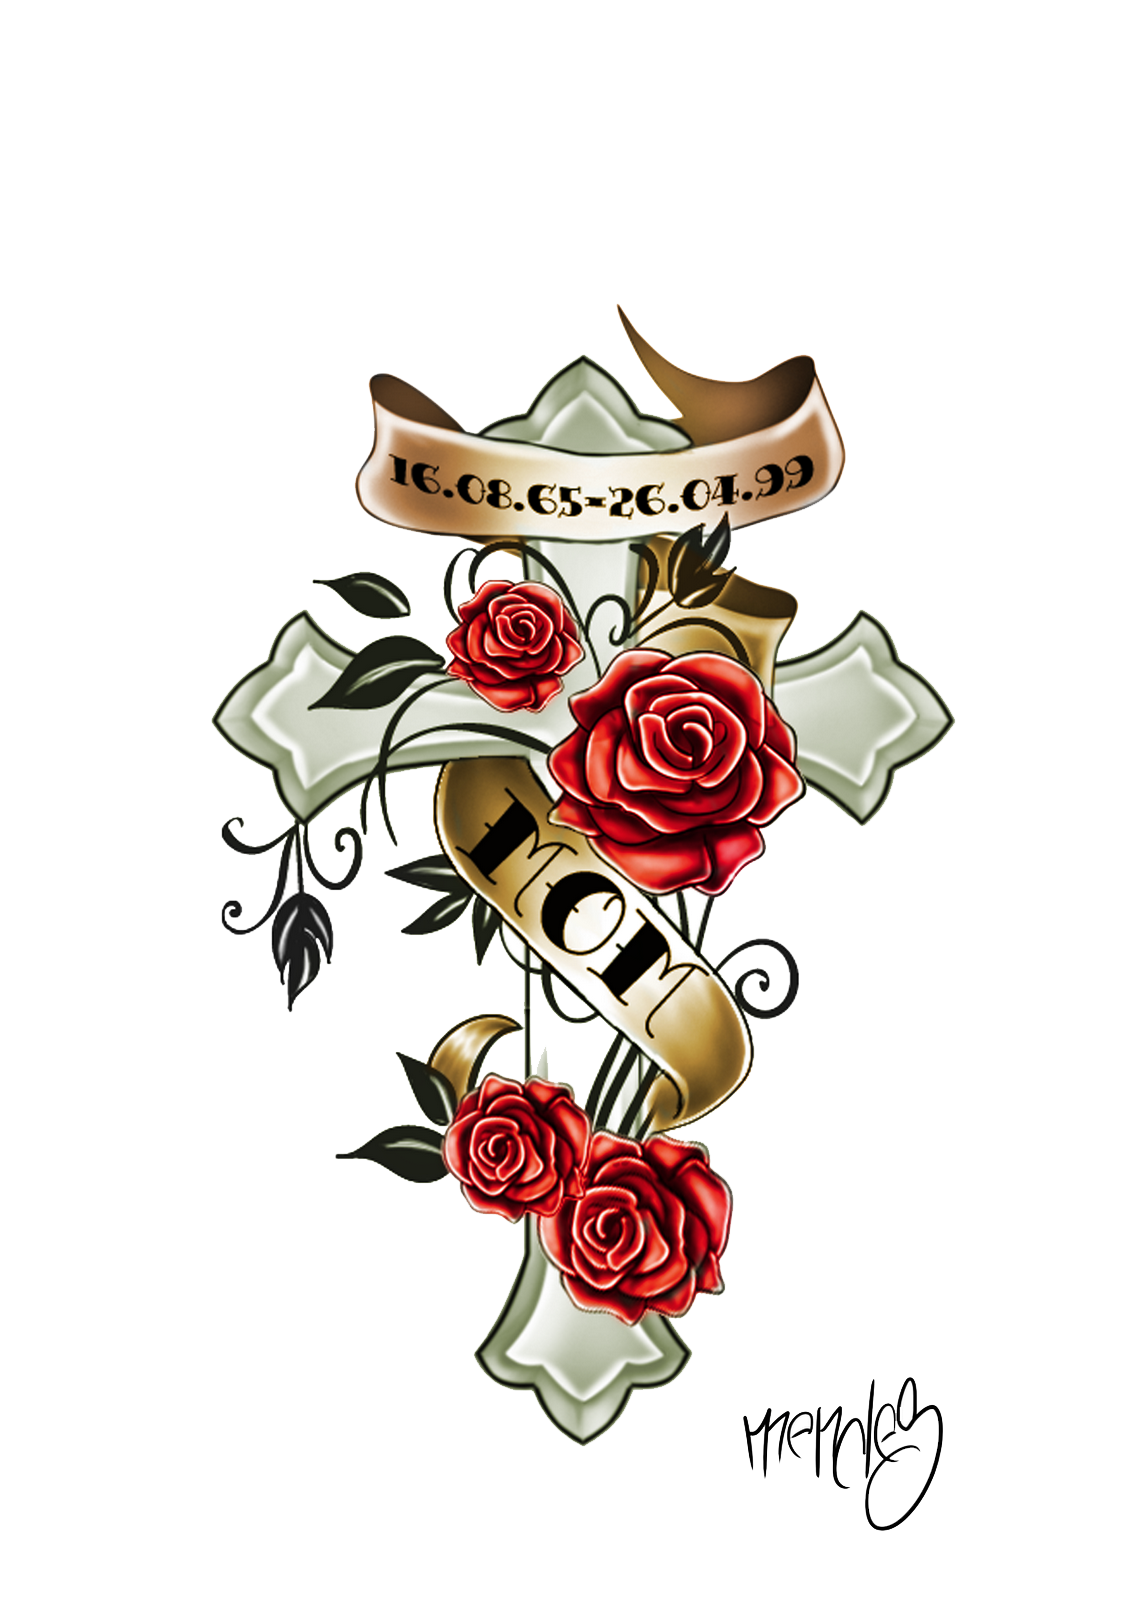 Tattoo Png Aesthetic Hd: Download Color Tattoo Hd HQ PNG Image